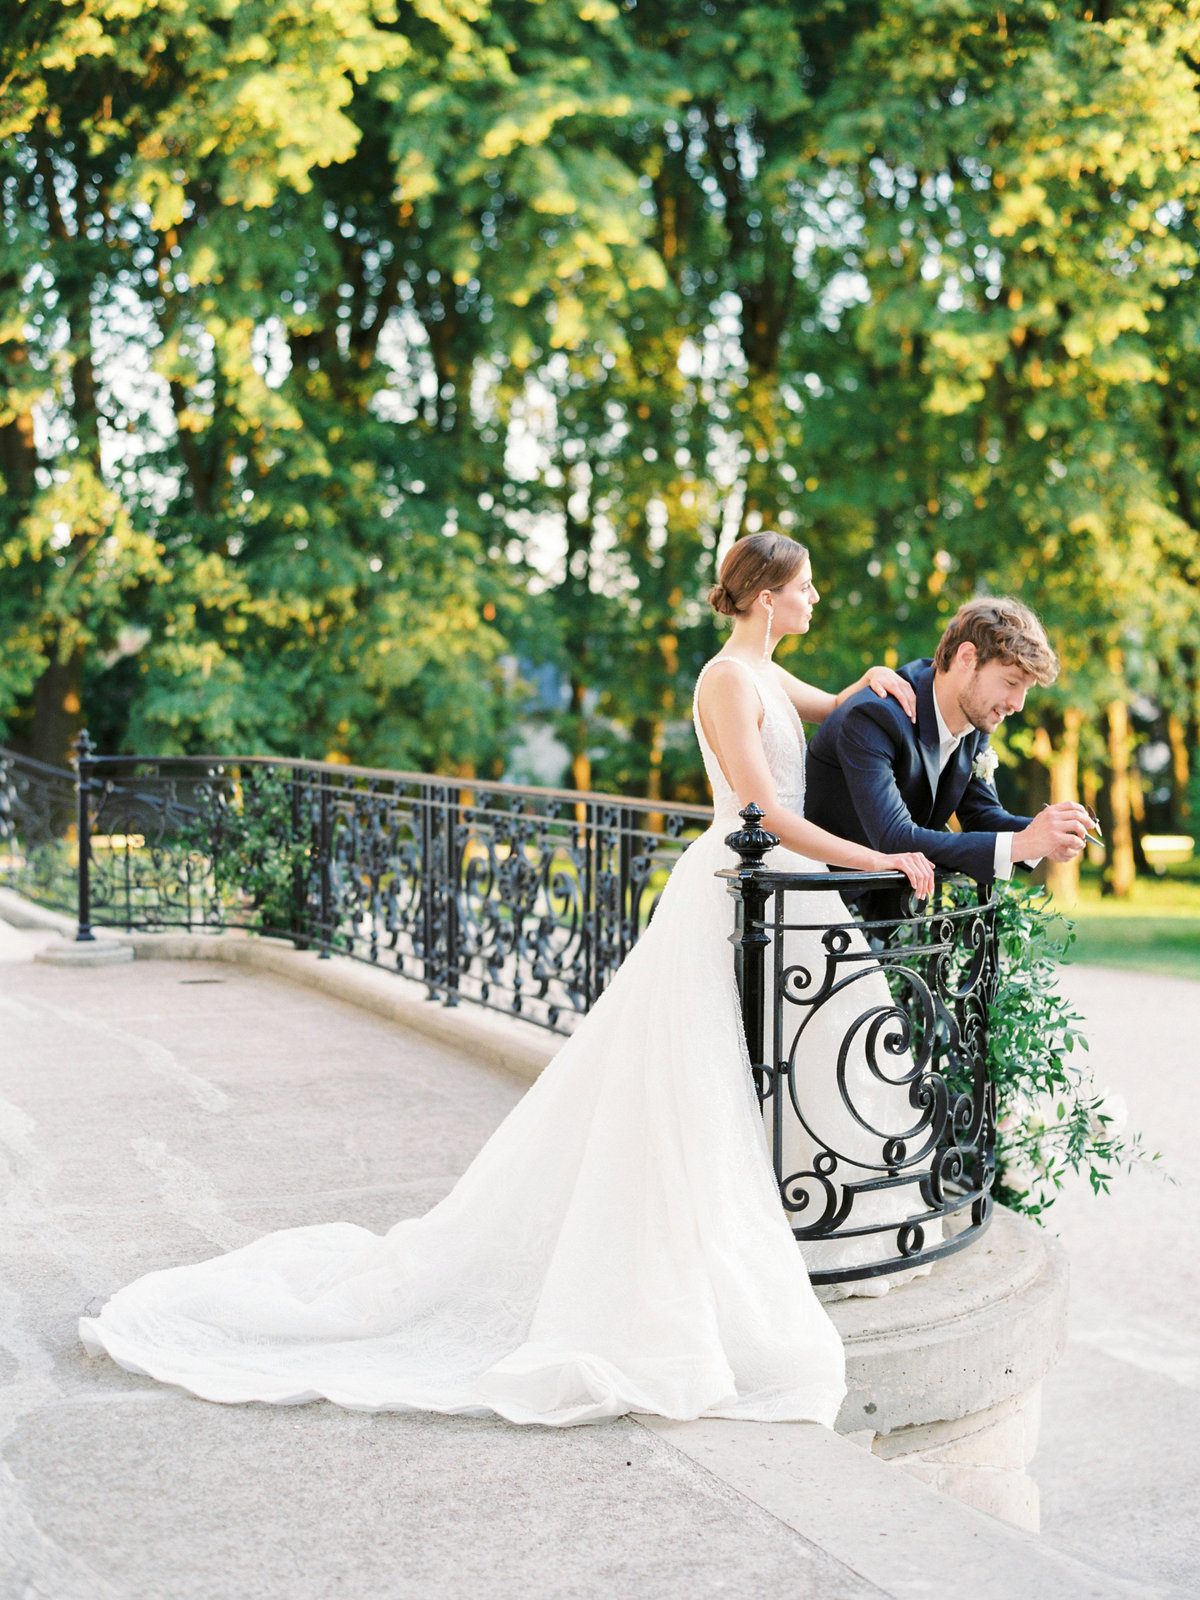 Luxurious french chateau wedding amelia soegijono0031